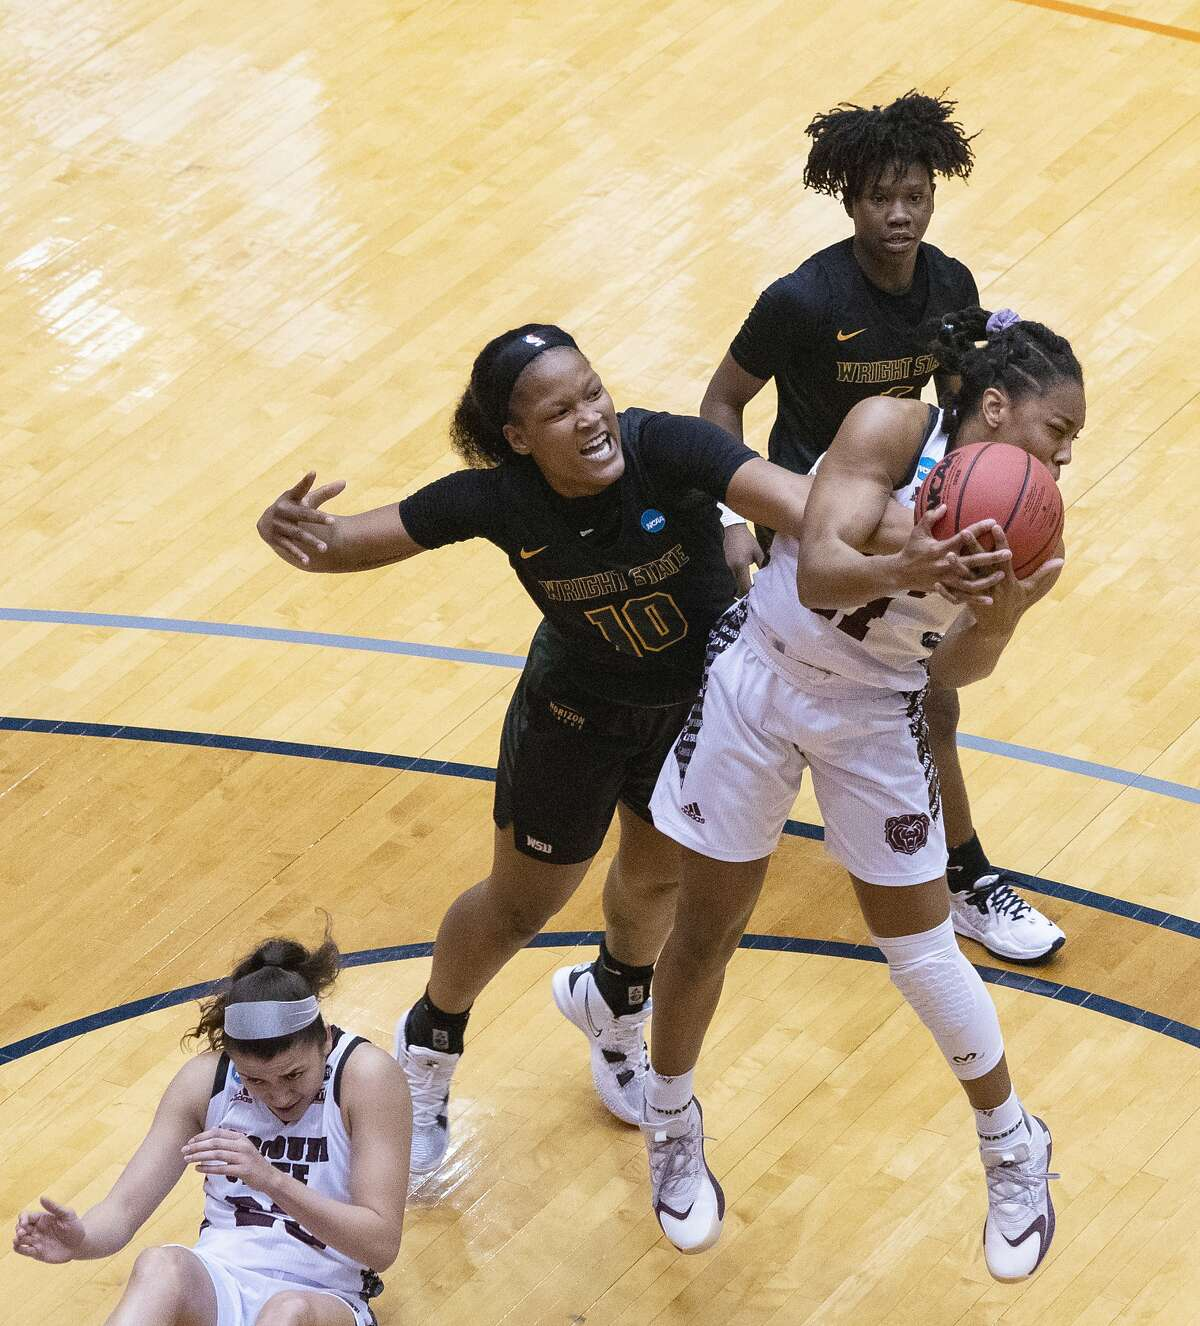 Missouri State guard Brice Calip, right, fights for a rebound with Wright State Forward Shamarre Hale during the second quarter of a college basketball game in the second round of the women's NCAA tournament at the University of Texas at San Antonio Convocation Center in San Antonio, Texas, Wednesday, March 24, 2021. (AP Photo/Michael Thomas)